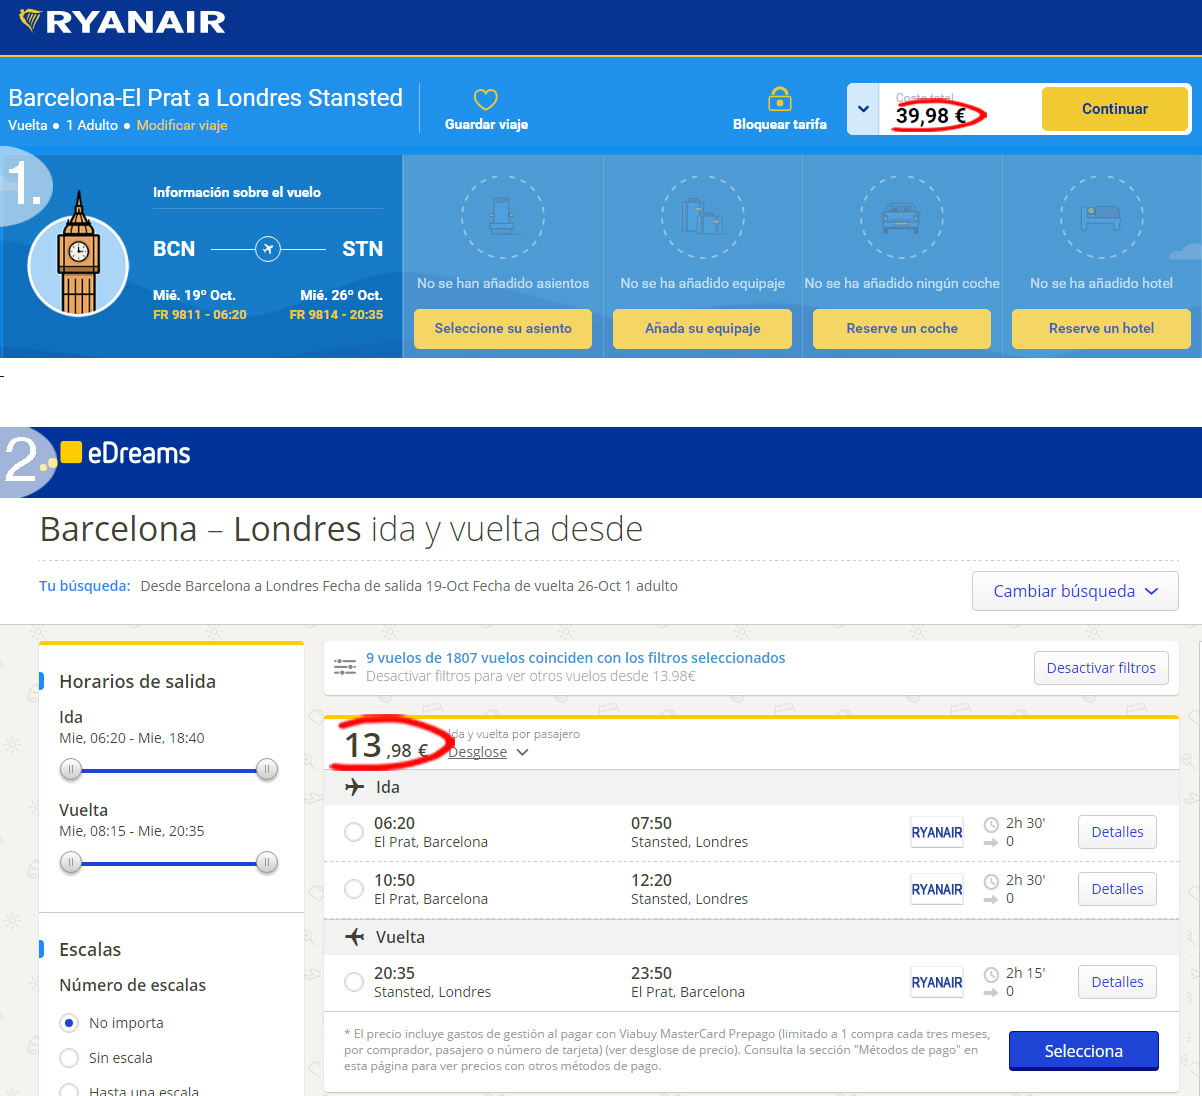 comparacion-ryanair-edreams1